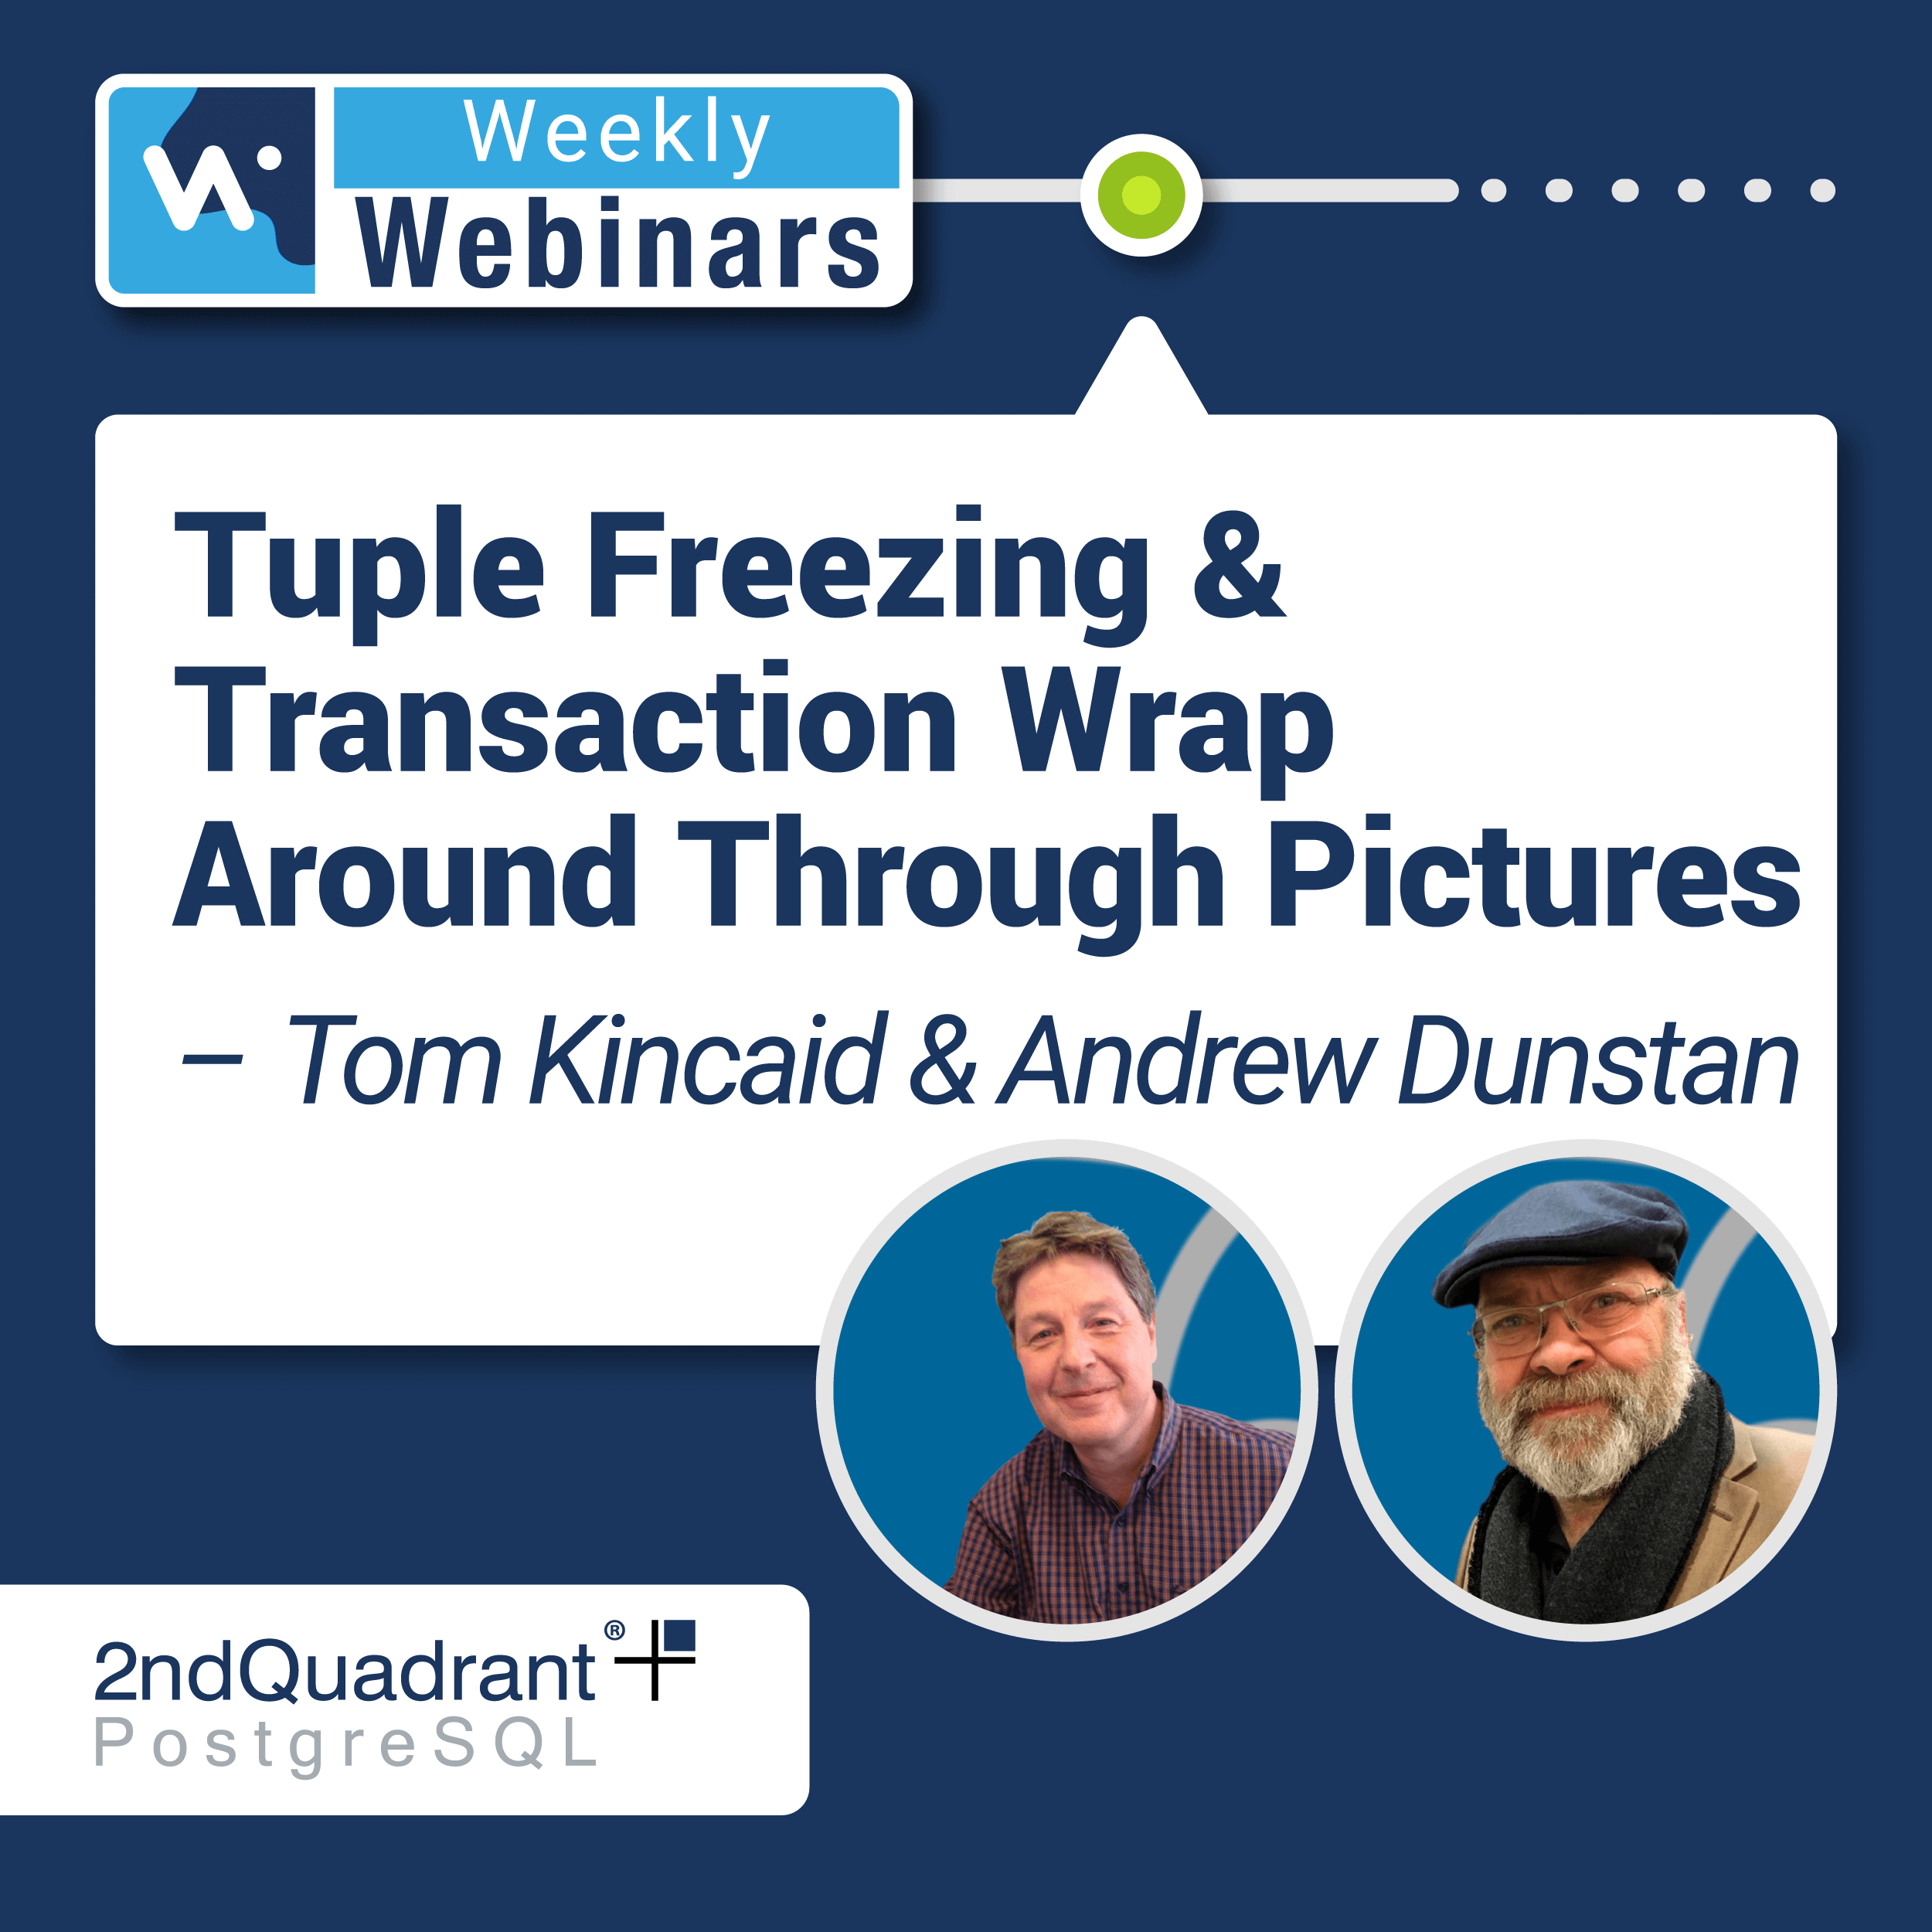 Tuple Freezing & Transaction Wraparound Through Pictures